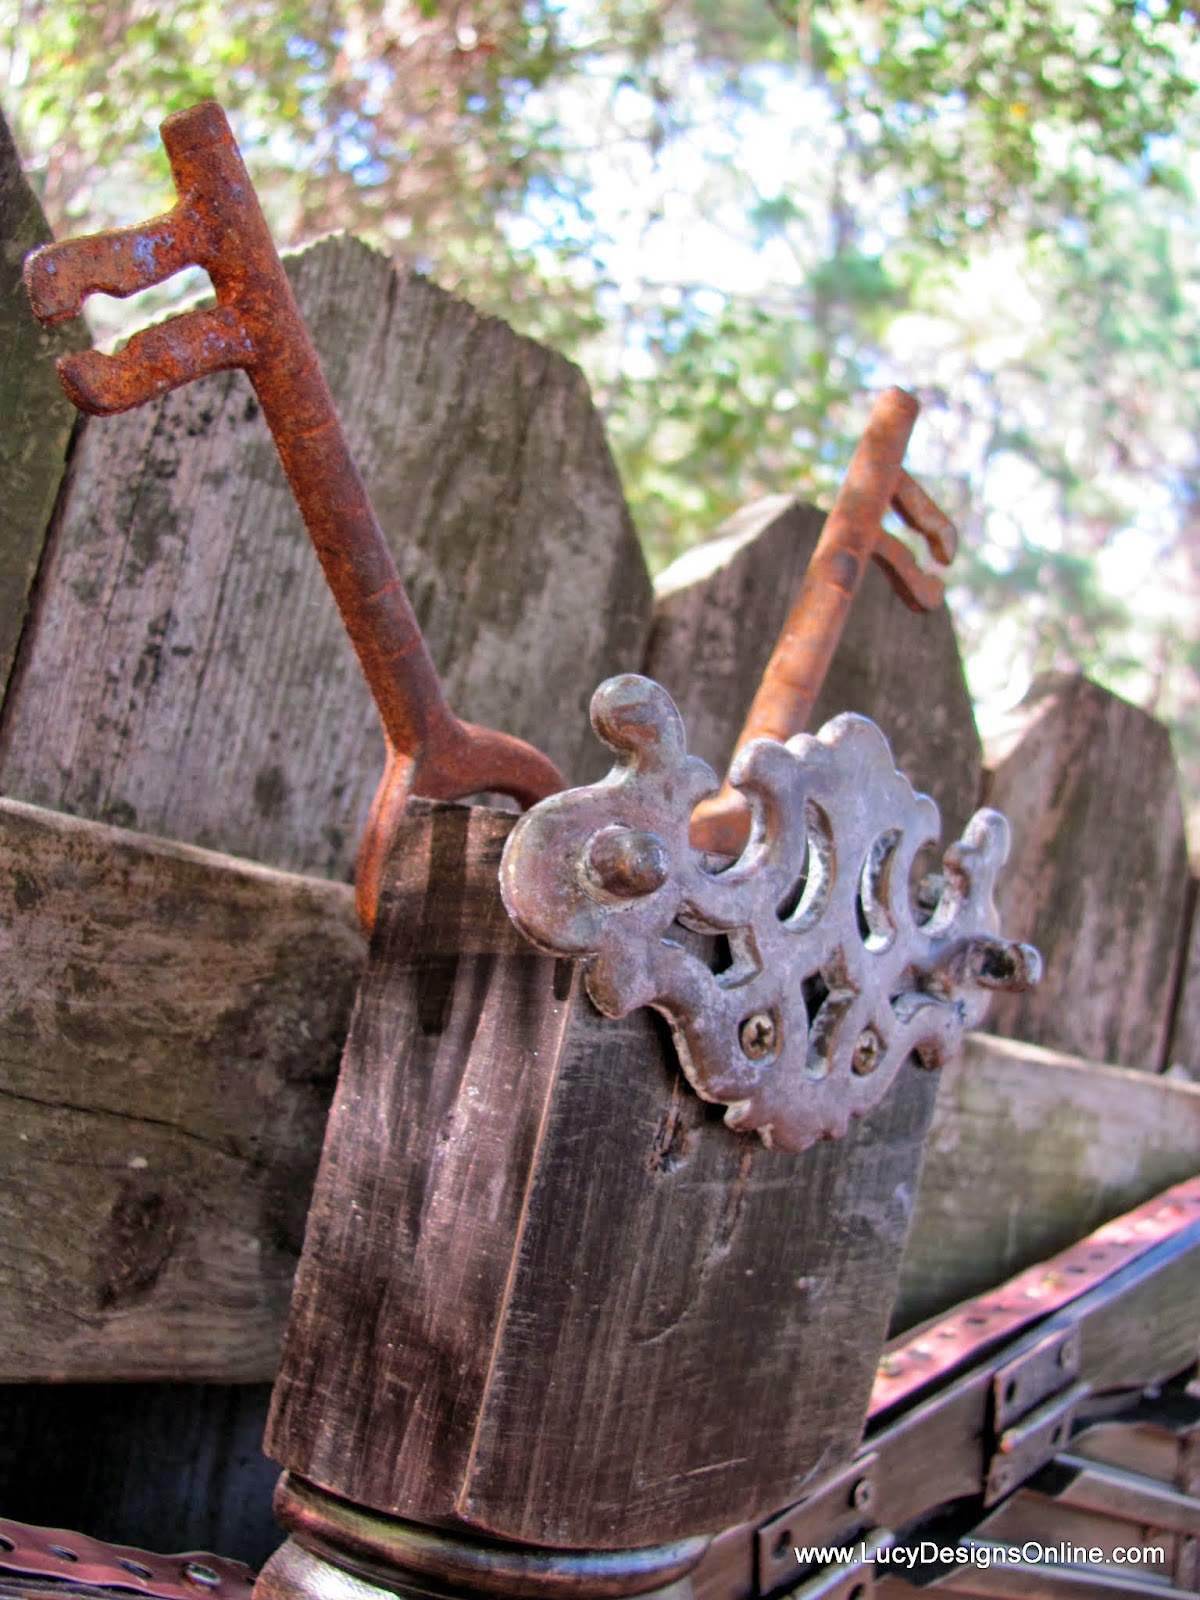 old keys, hinges and drawer pulls on giant sculpture